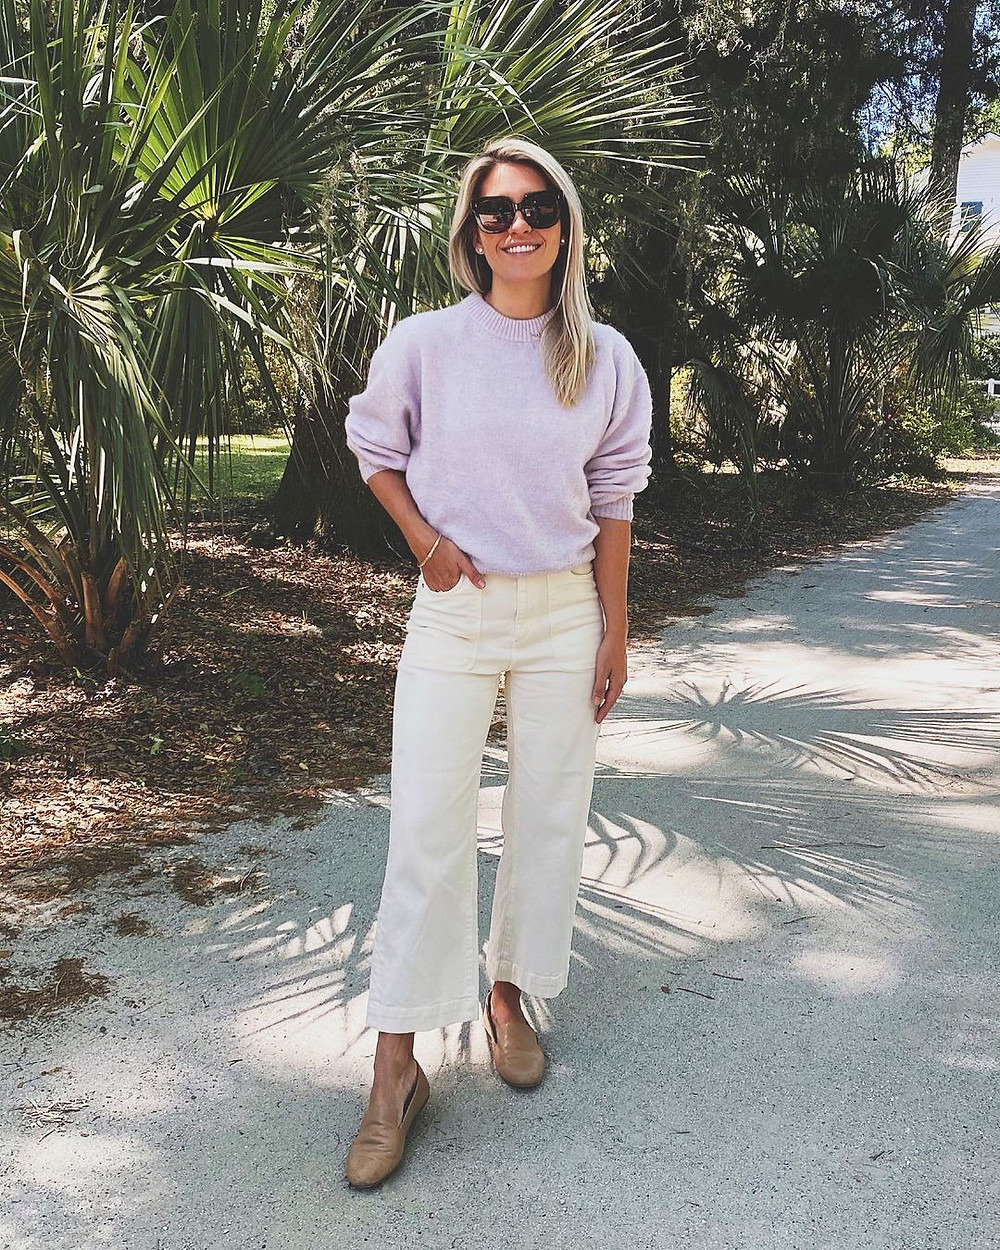 megan stokes in charleston wearing sweater and white jeans